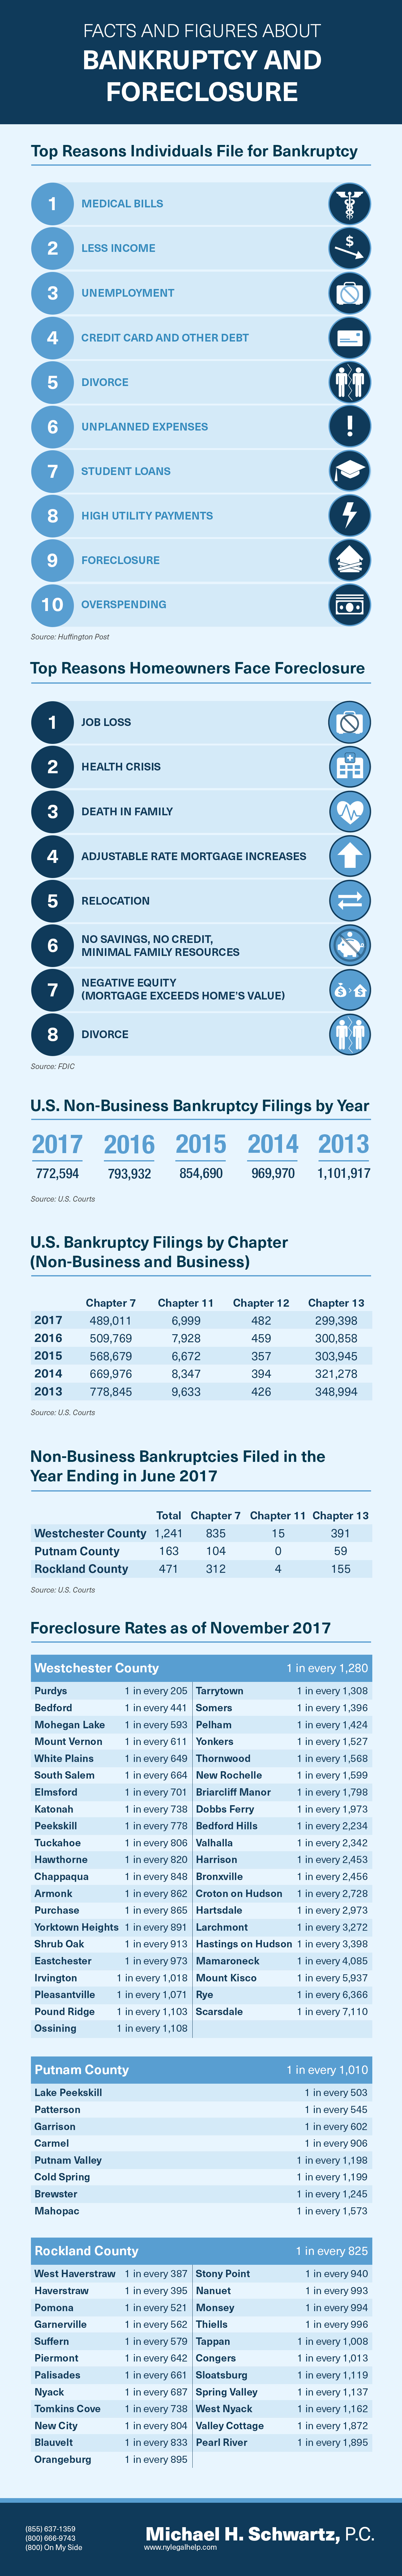 Facts and Figures about Bankruptcy and Foreclosure in New York